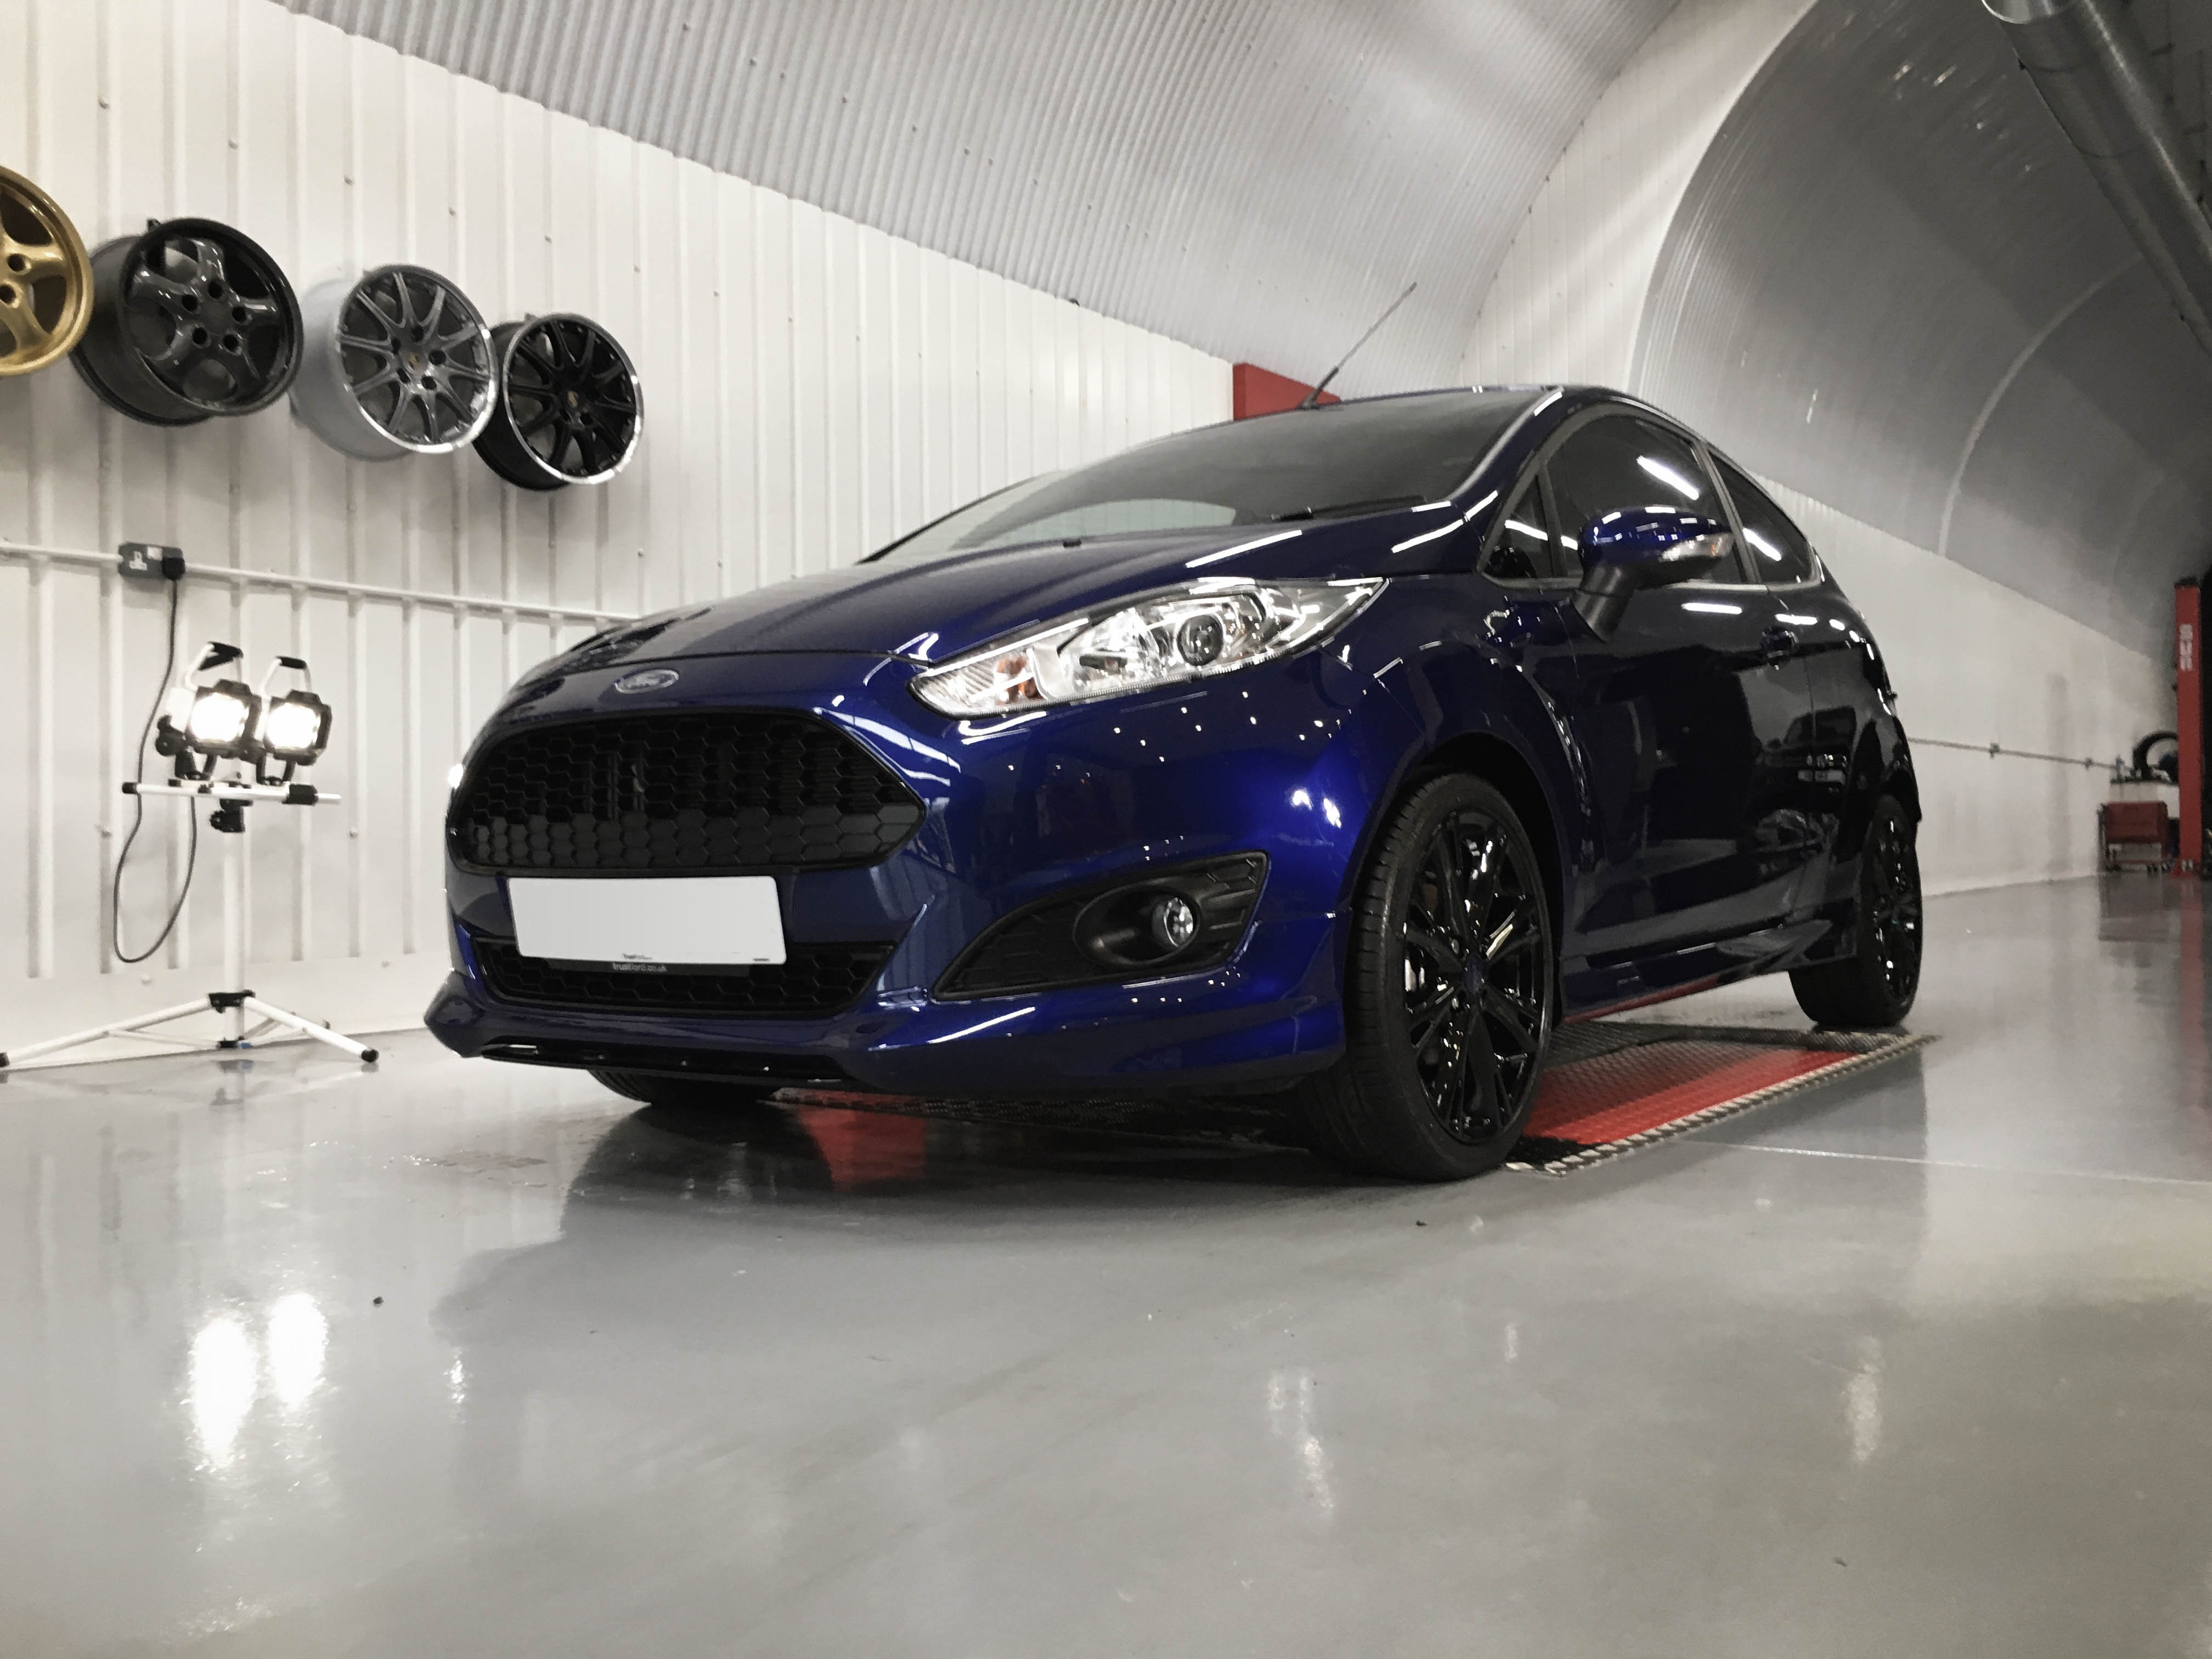 http://217.199.187.68/bellissimoto.co.uk/wp-admin/post.php?post=620&action=edit#Ford Focus – Front